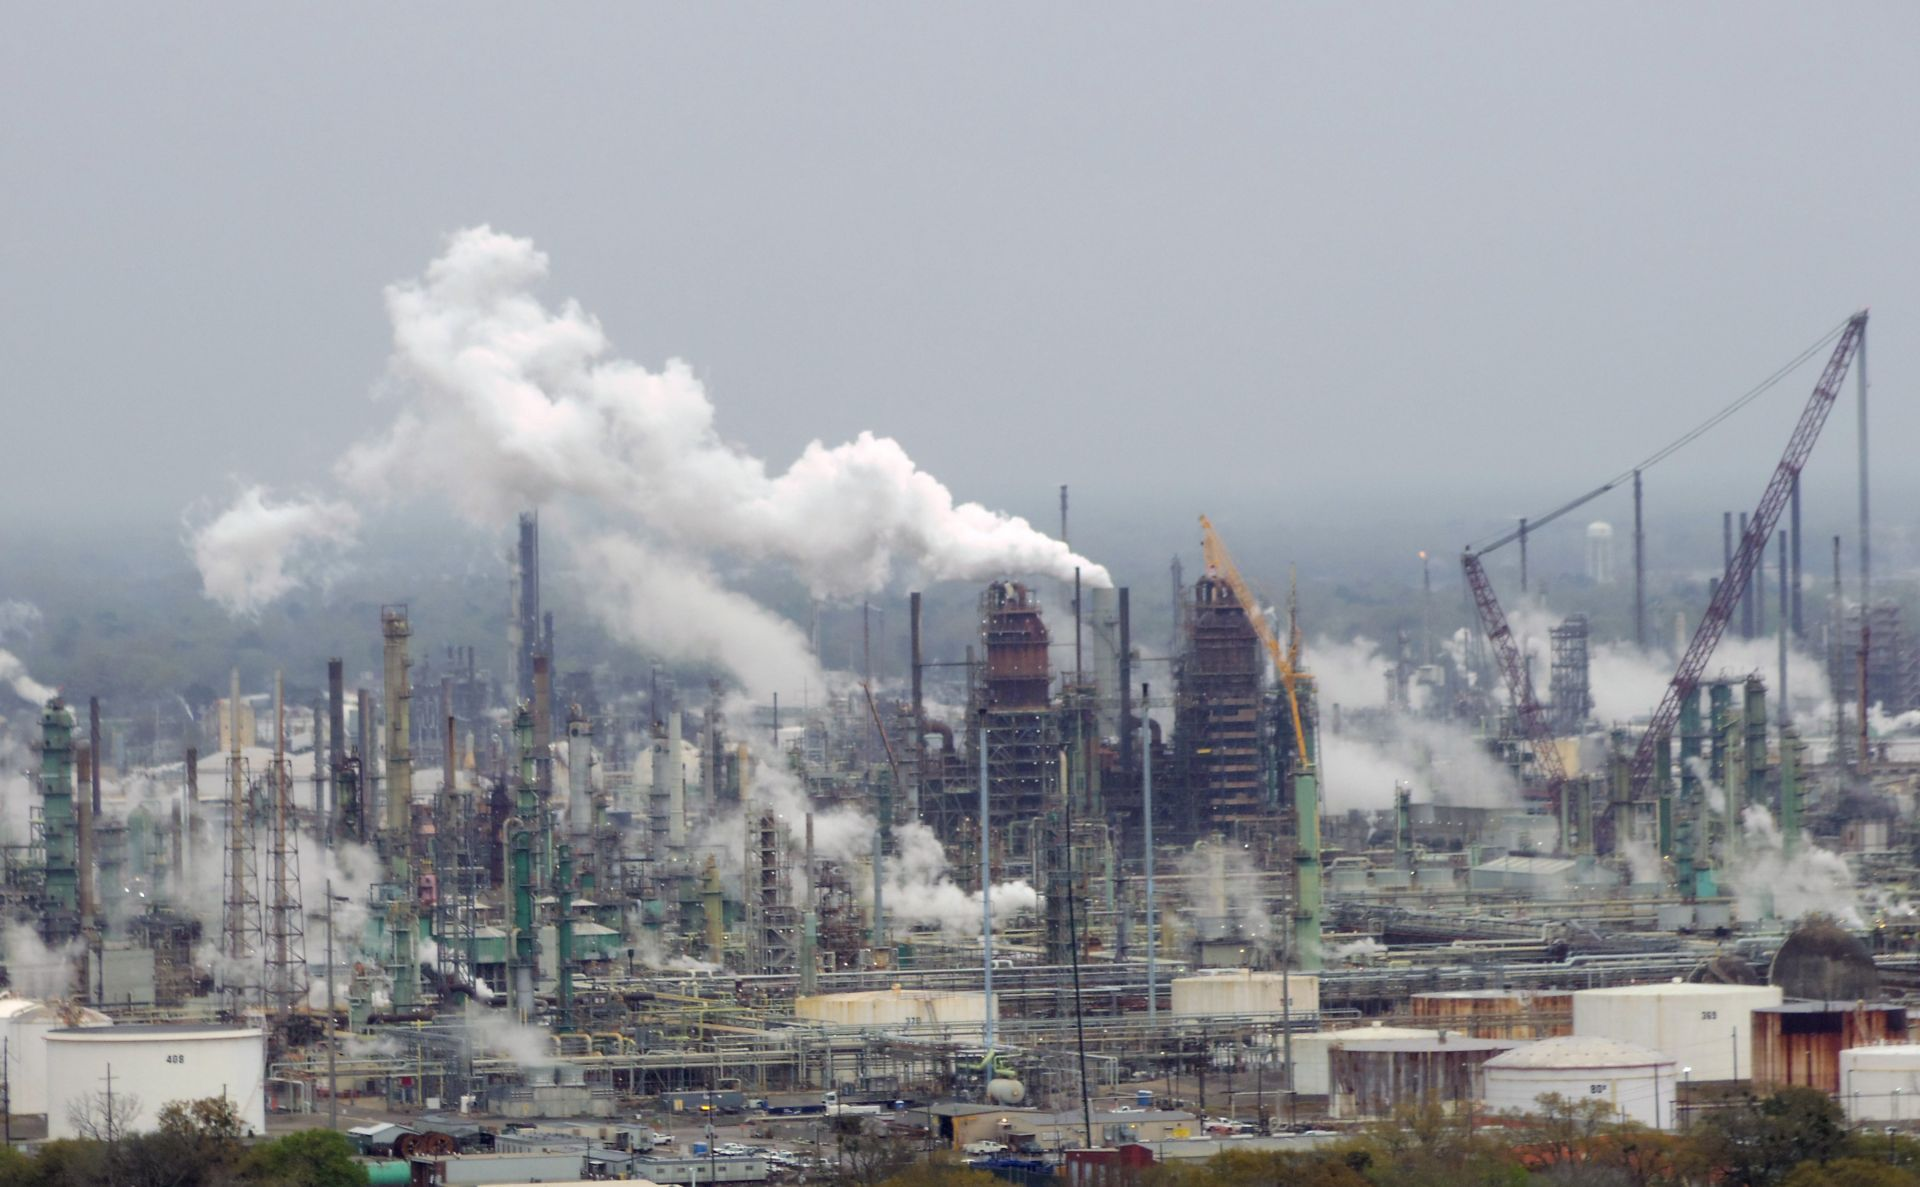 Exxon Mobil Refinery in Baton Rouge, Louisiana.